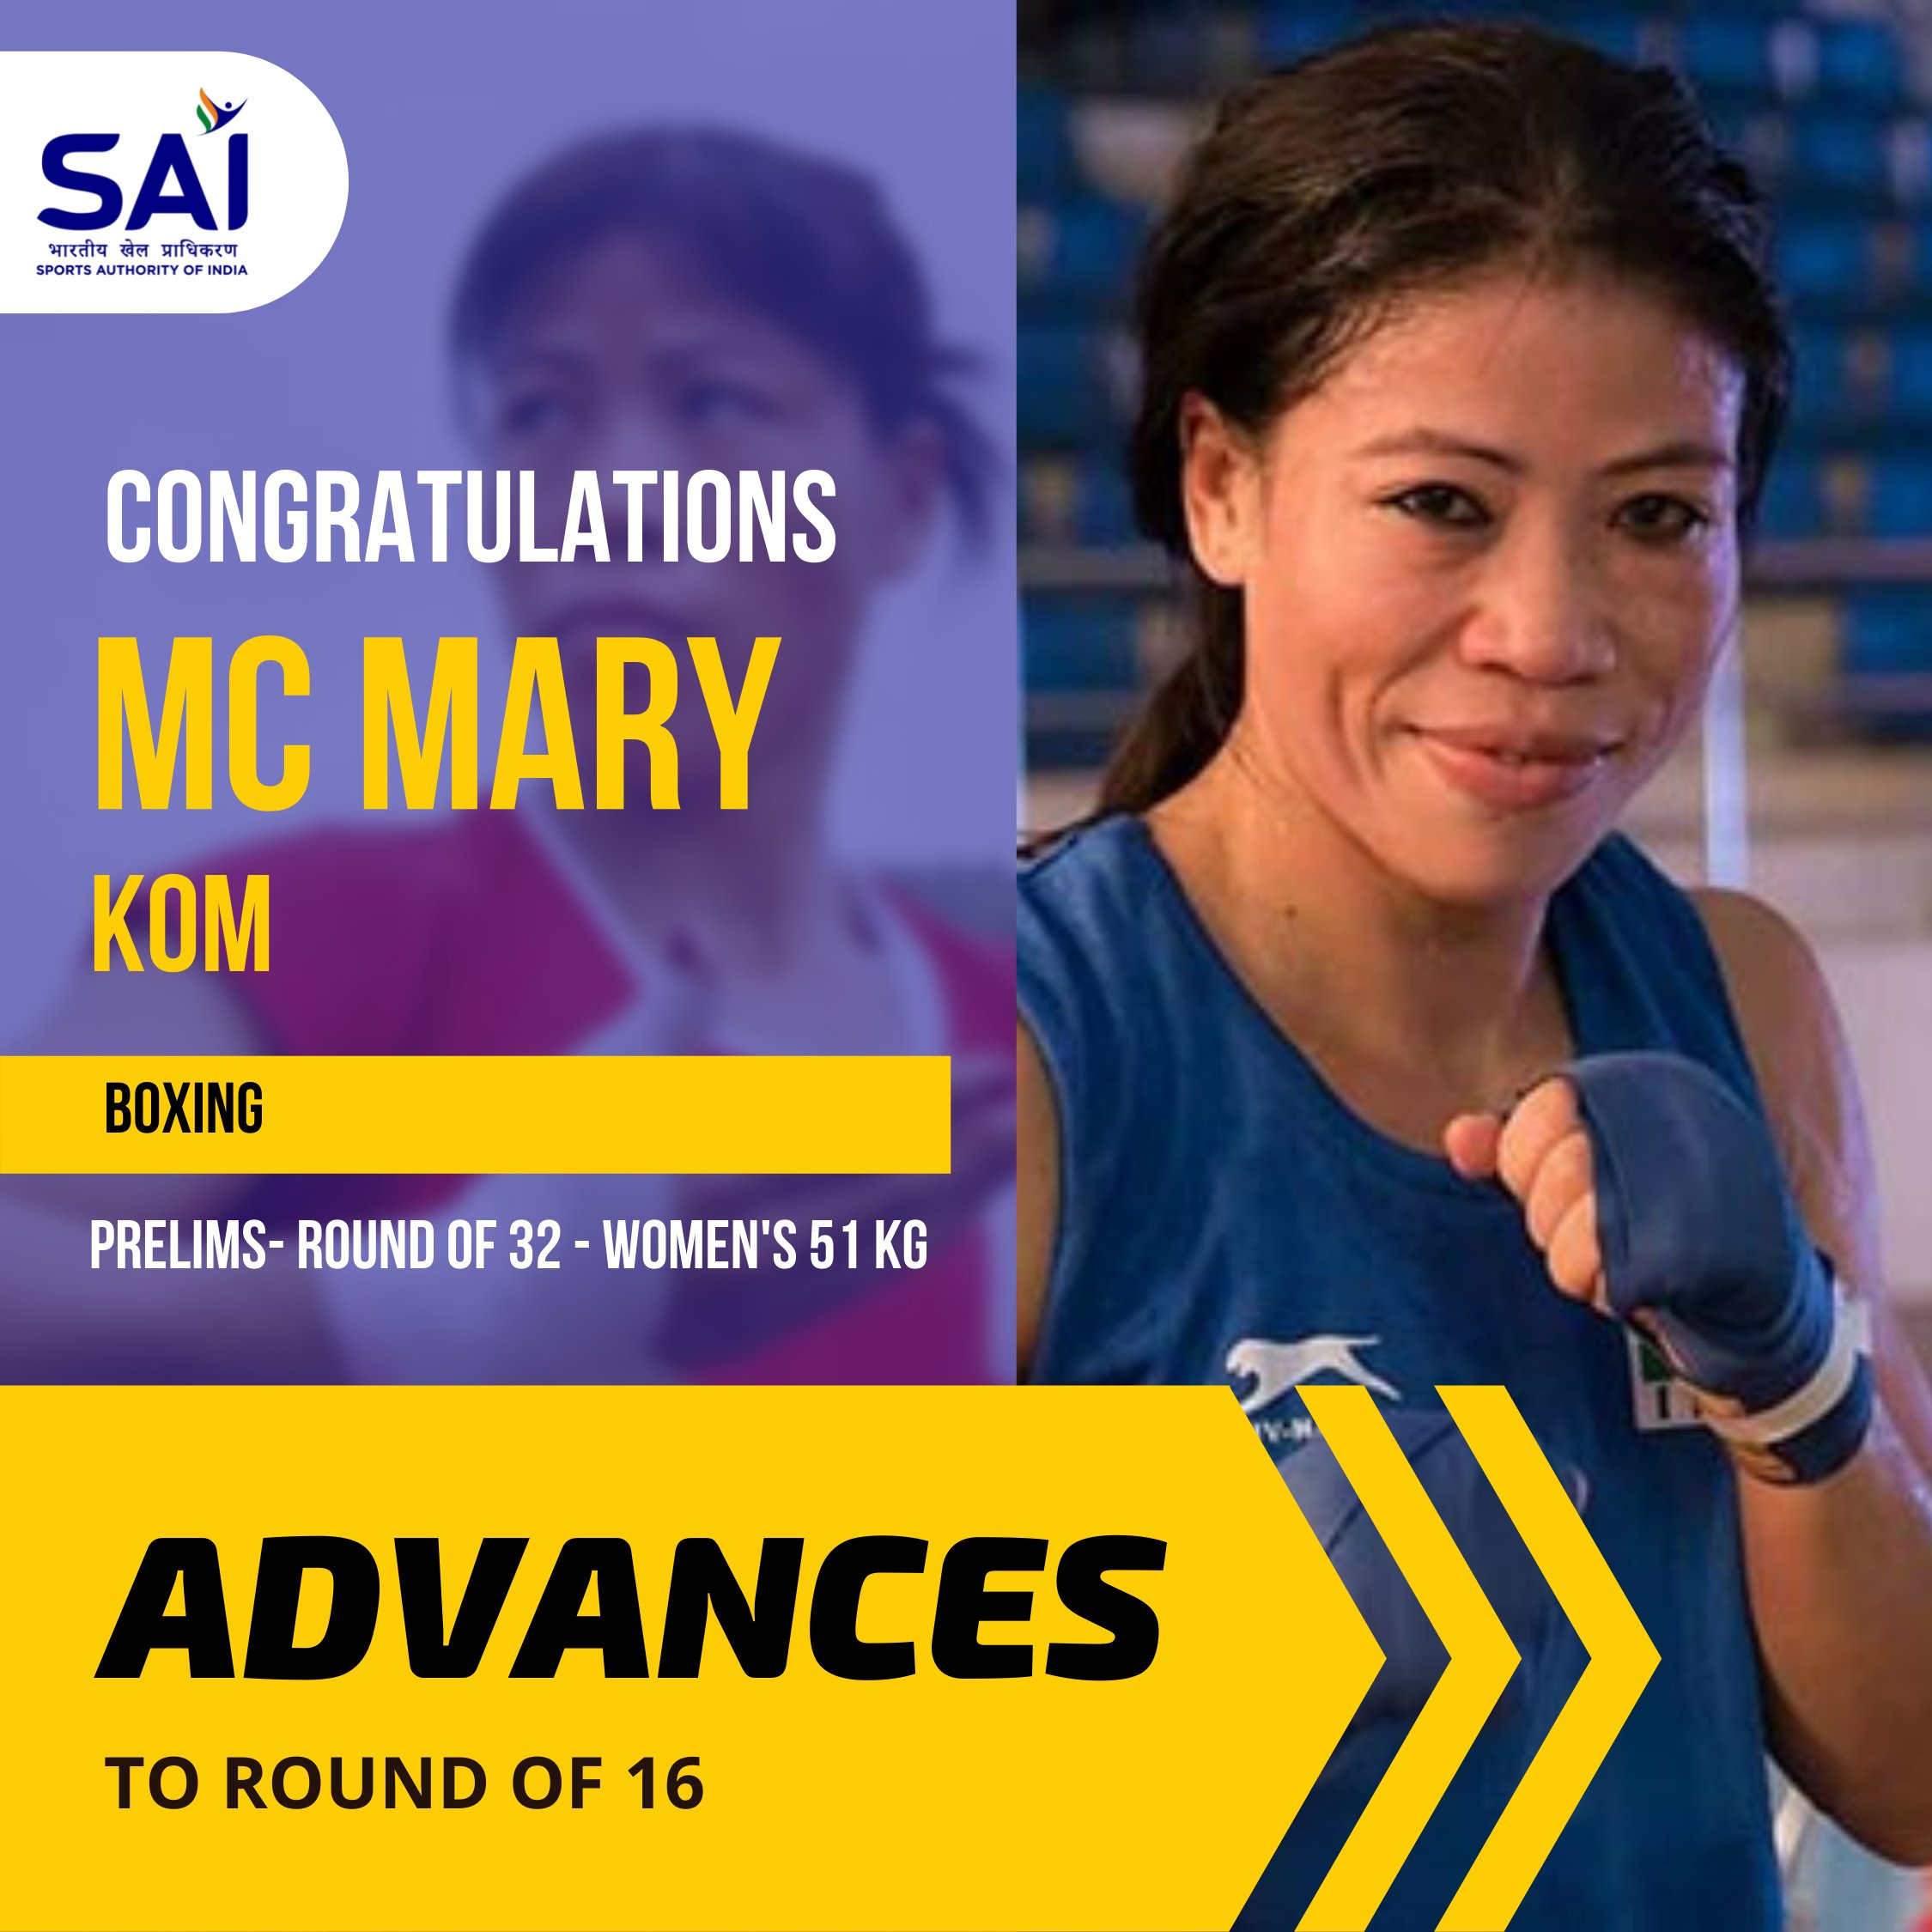 Indian boxer M C Mary Kom (51kg) enters pre-quarters of Olympic Games, beating Dominica's Miguelina Hernandez Garcia in opening round...